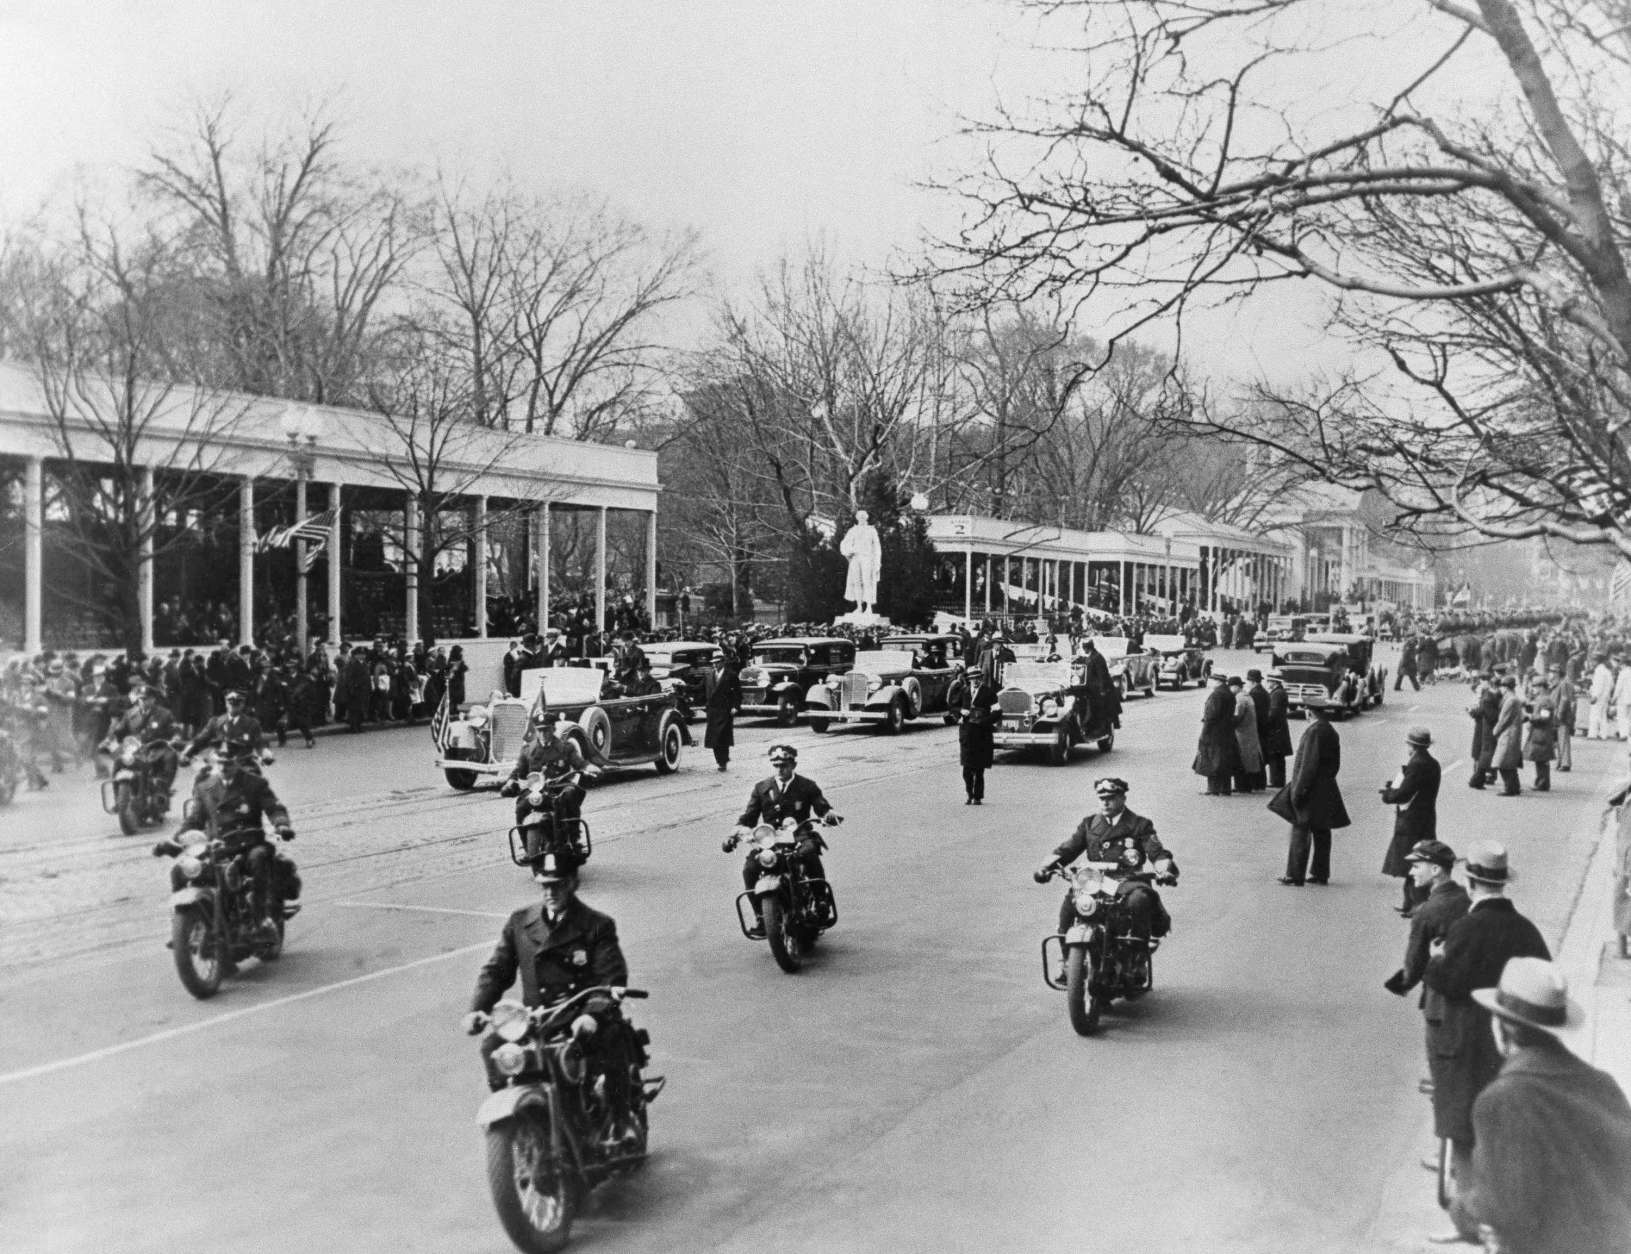 ** FILE ** In this March 4, 1933 file photo, motorcycle police escort the Presidential motorcade from the White House for the Capitol and the inauguration of Franklin D. Roosevelt in Washington.   Behind the cars is the court of honor from which two hours later Roosevelt as President reviewed the inaugural parade. (AP Photo/File)